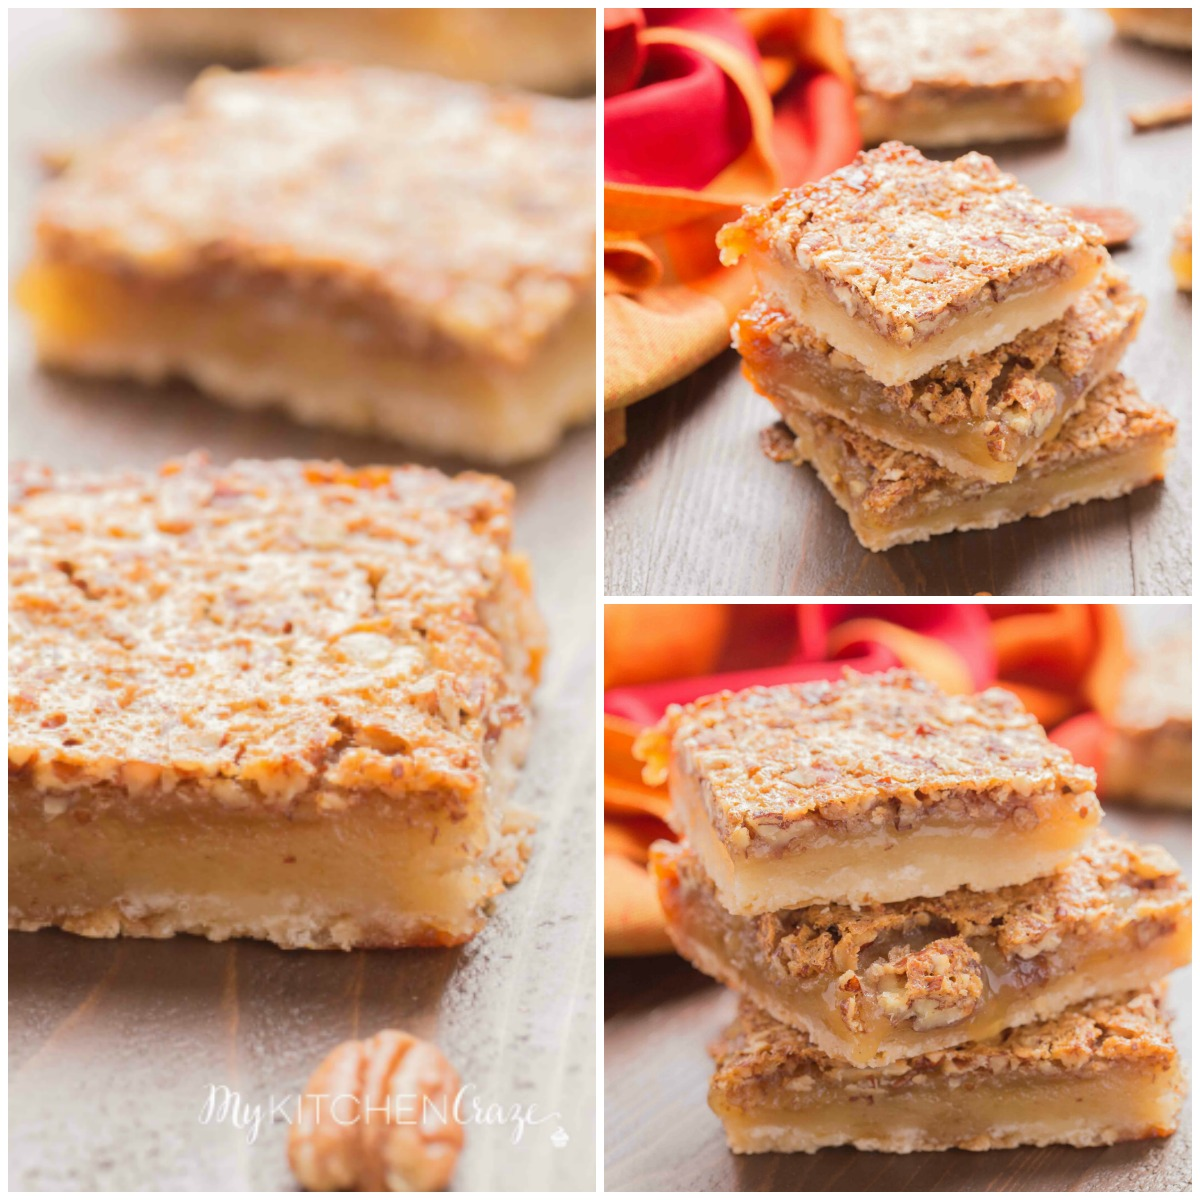 Pecan Pie Bars are a tasty, easy alternative to traditional pecan pie!